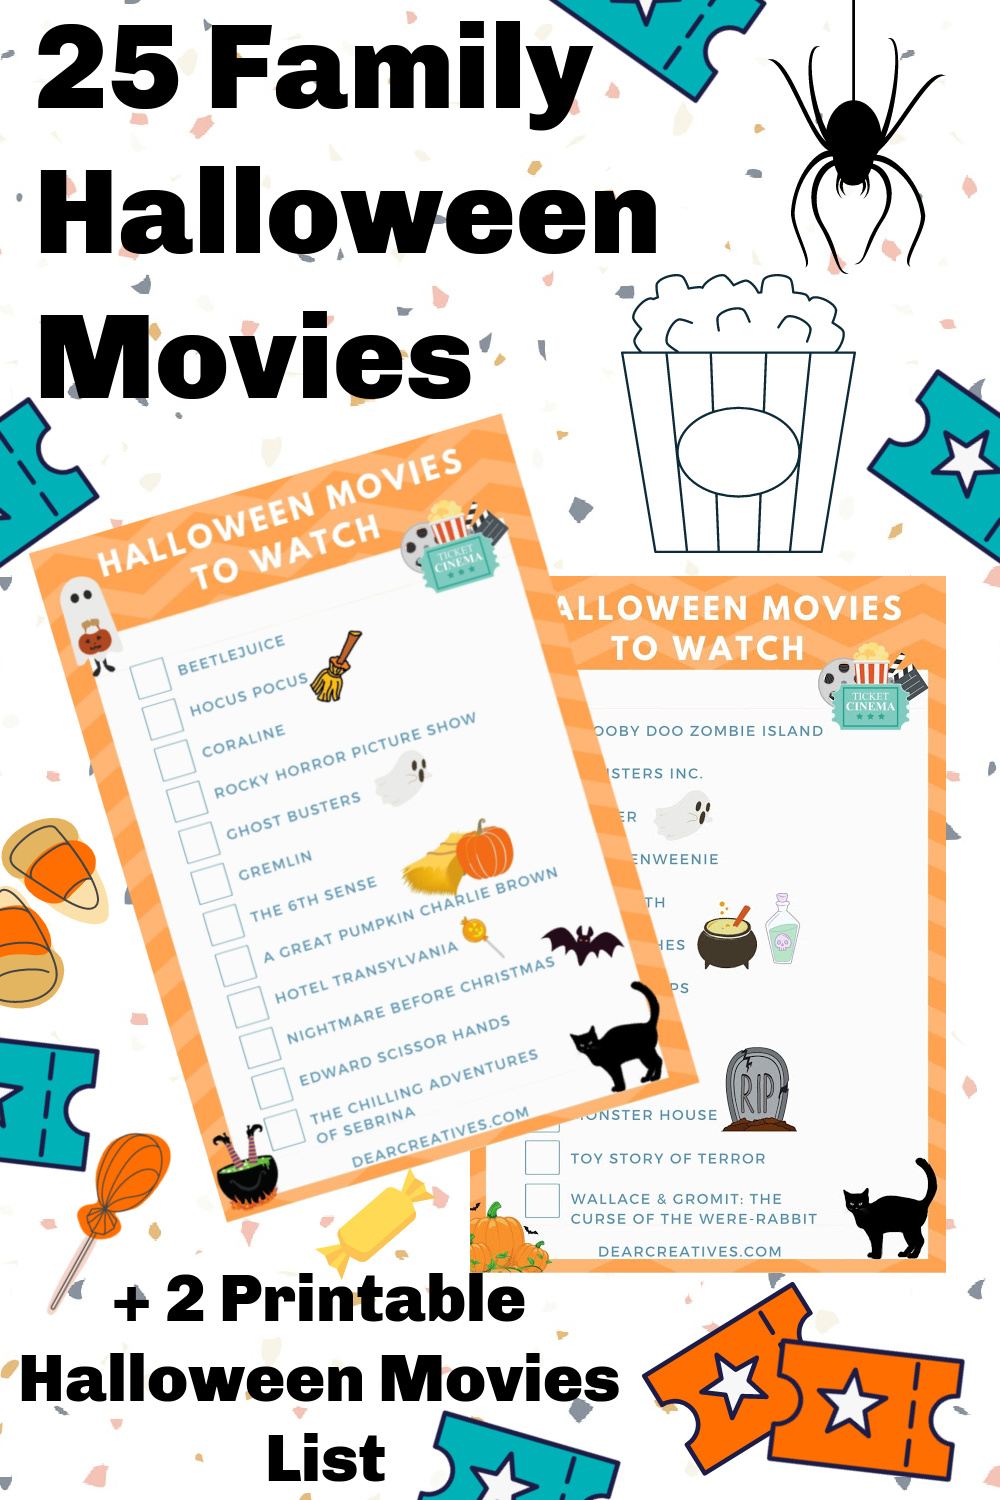 25 Family Halloween Movies To Watch!